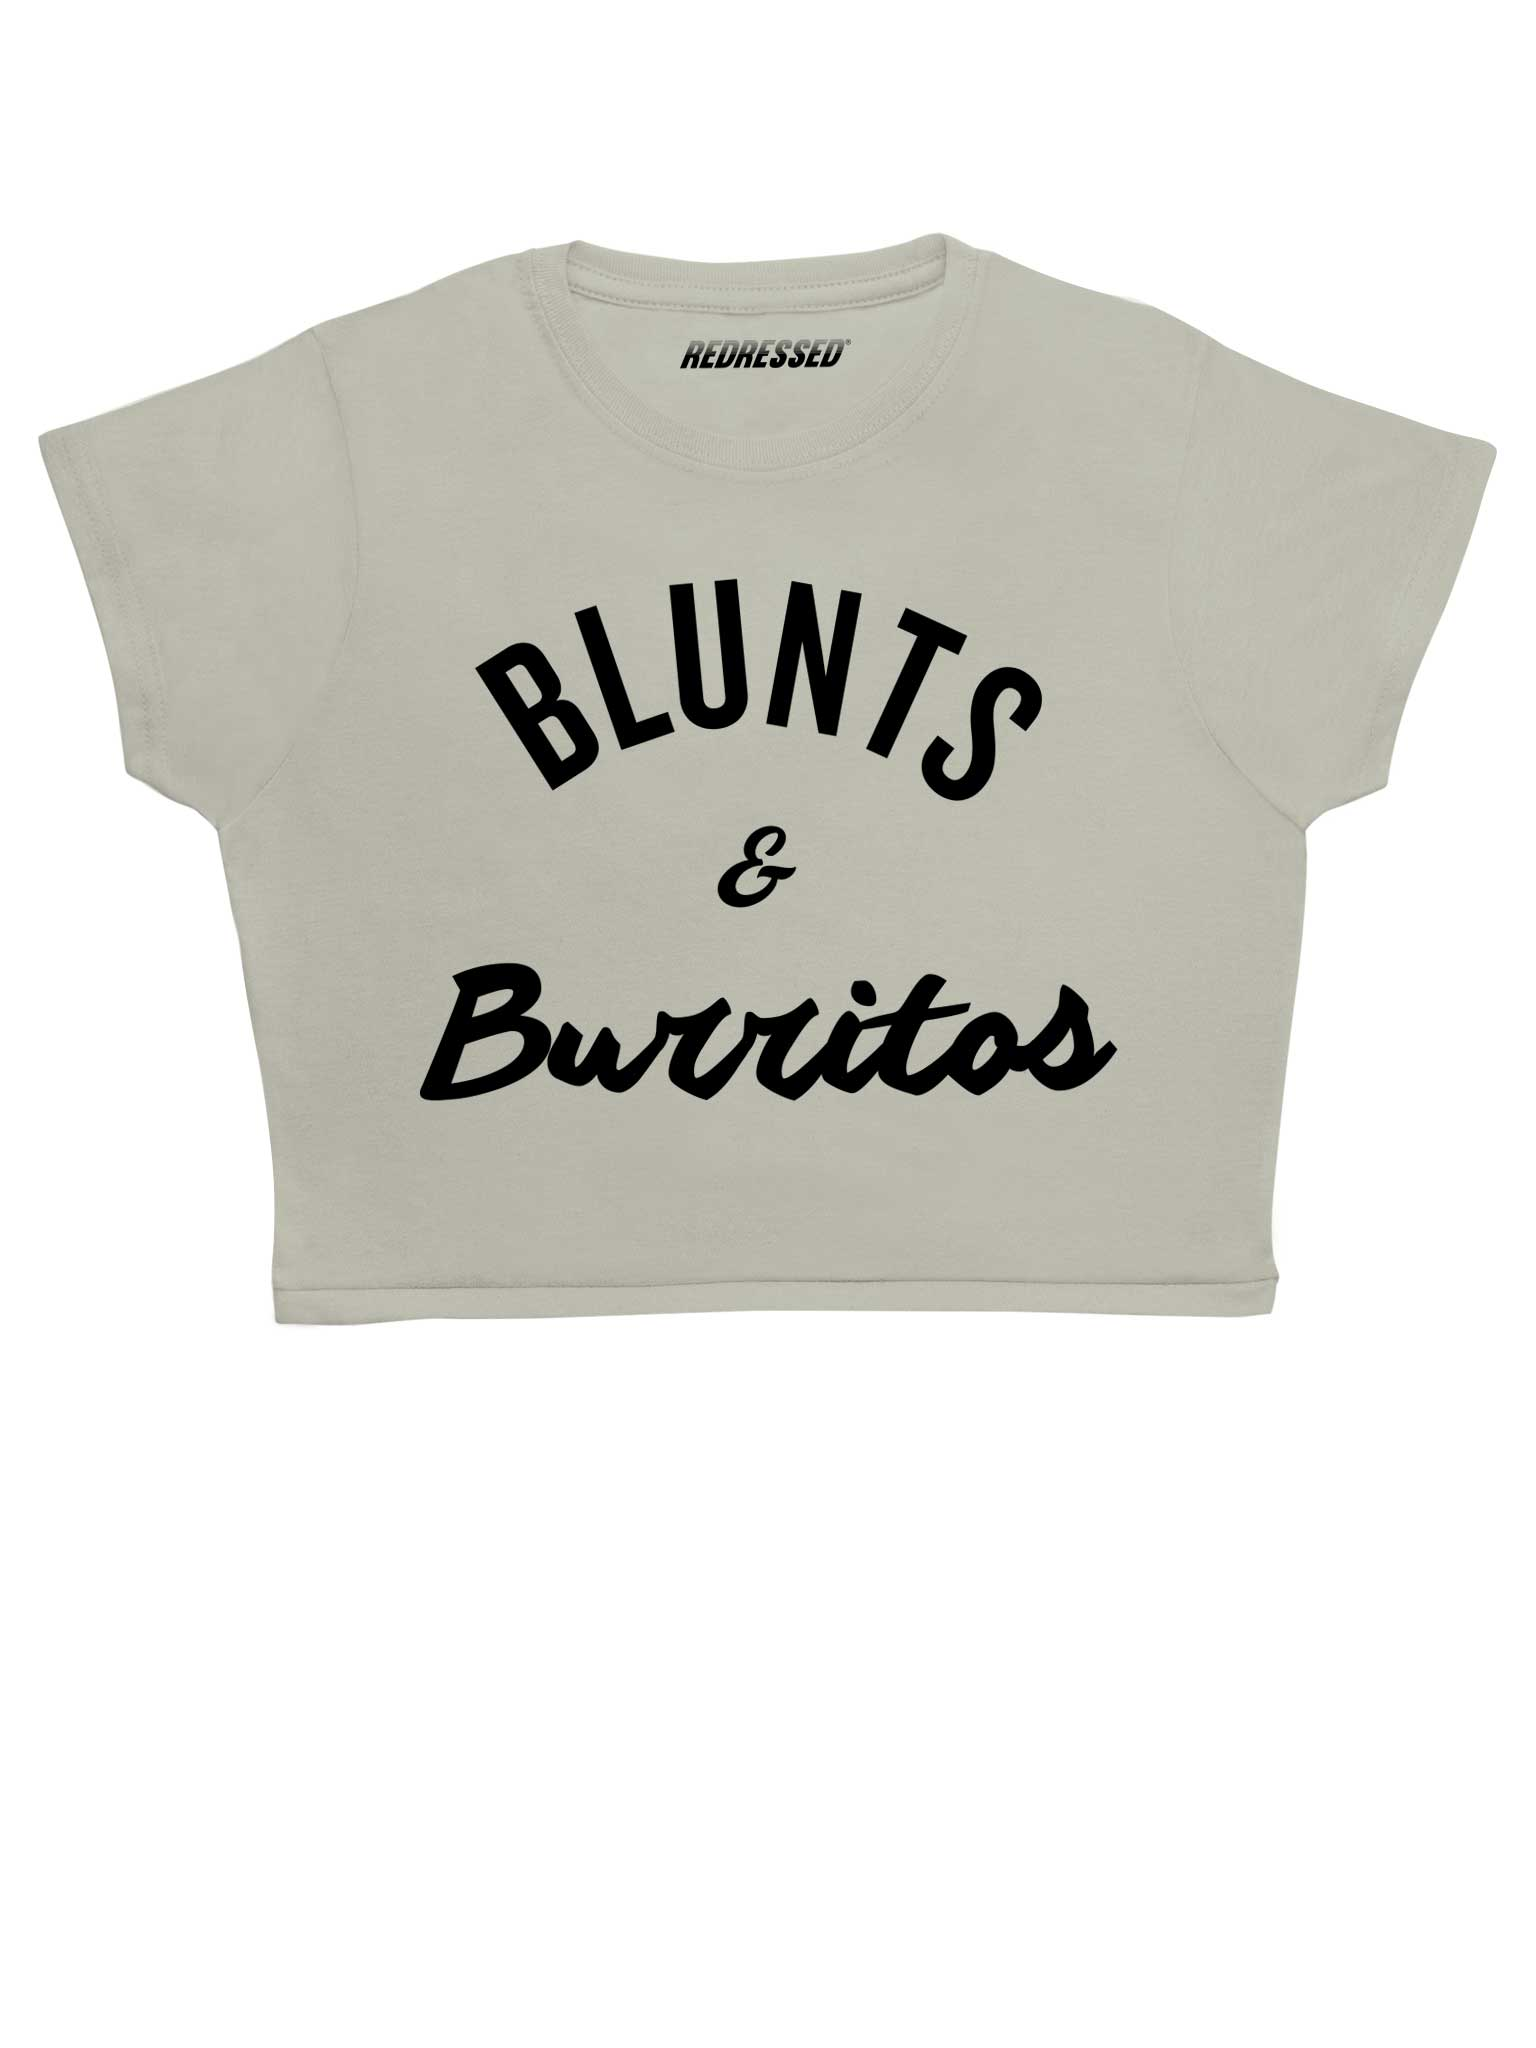 Blunts & Burritos Crop Top